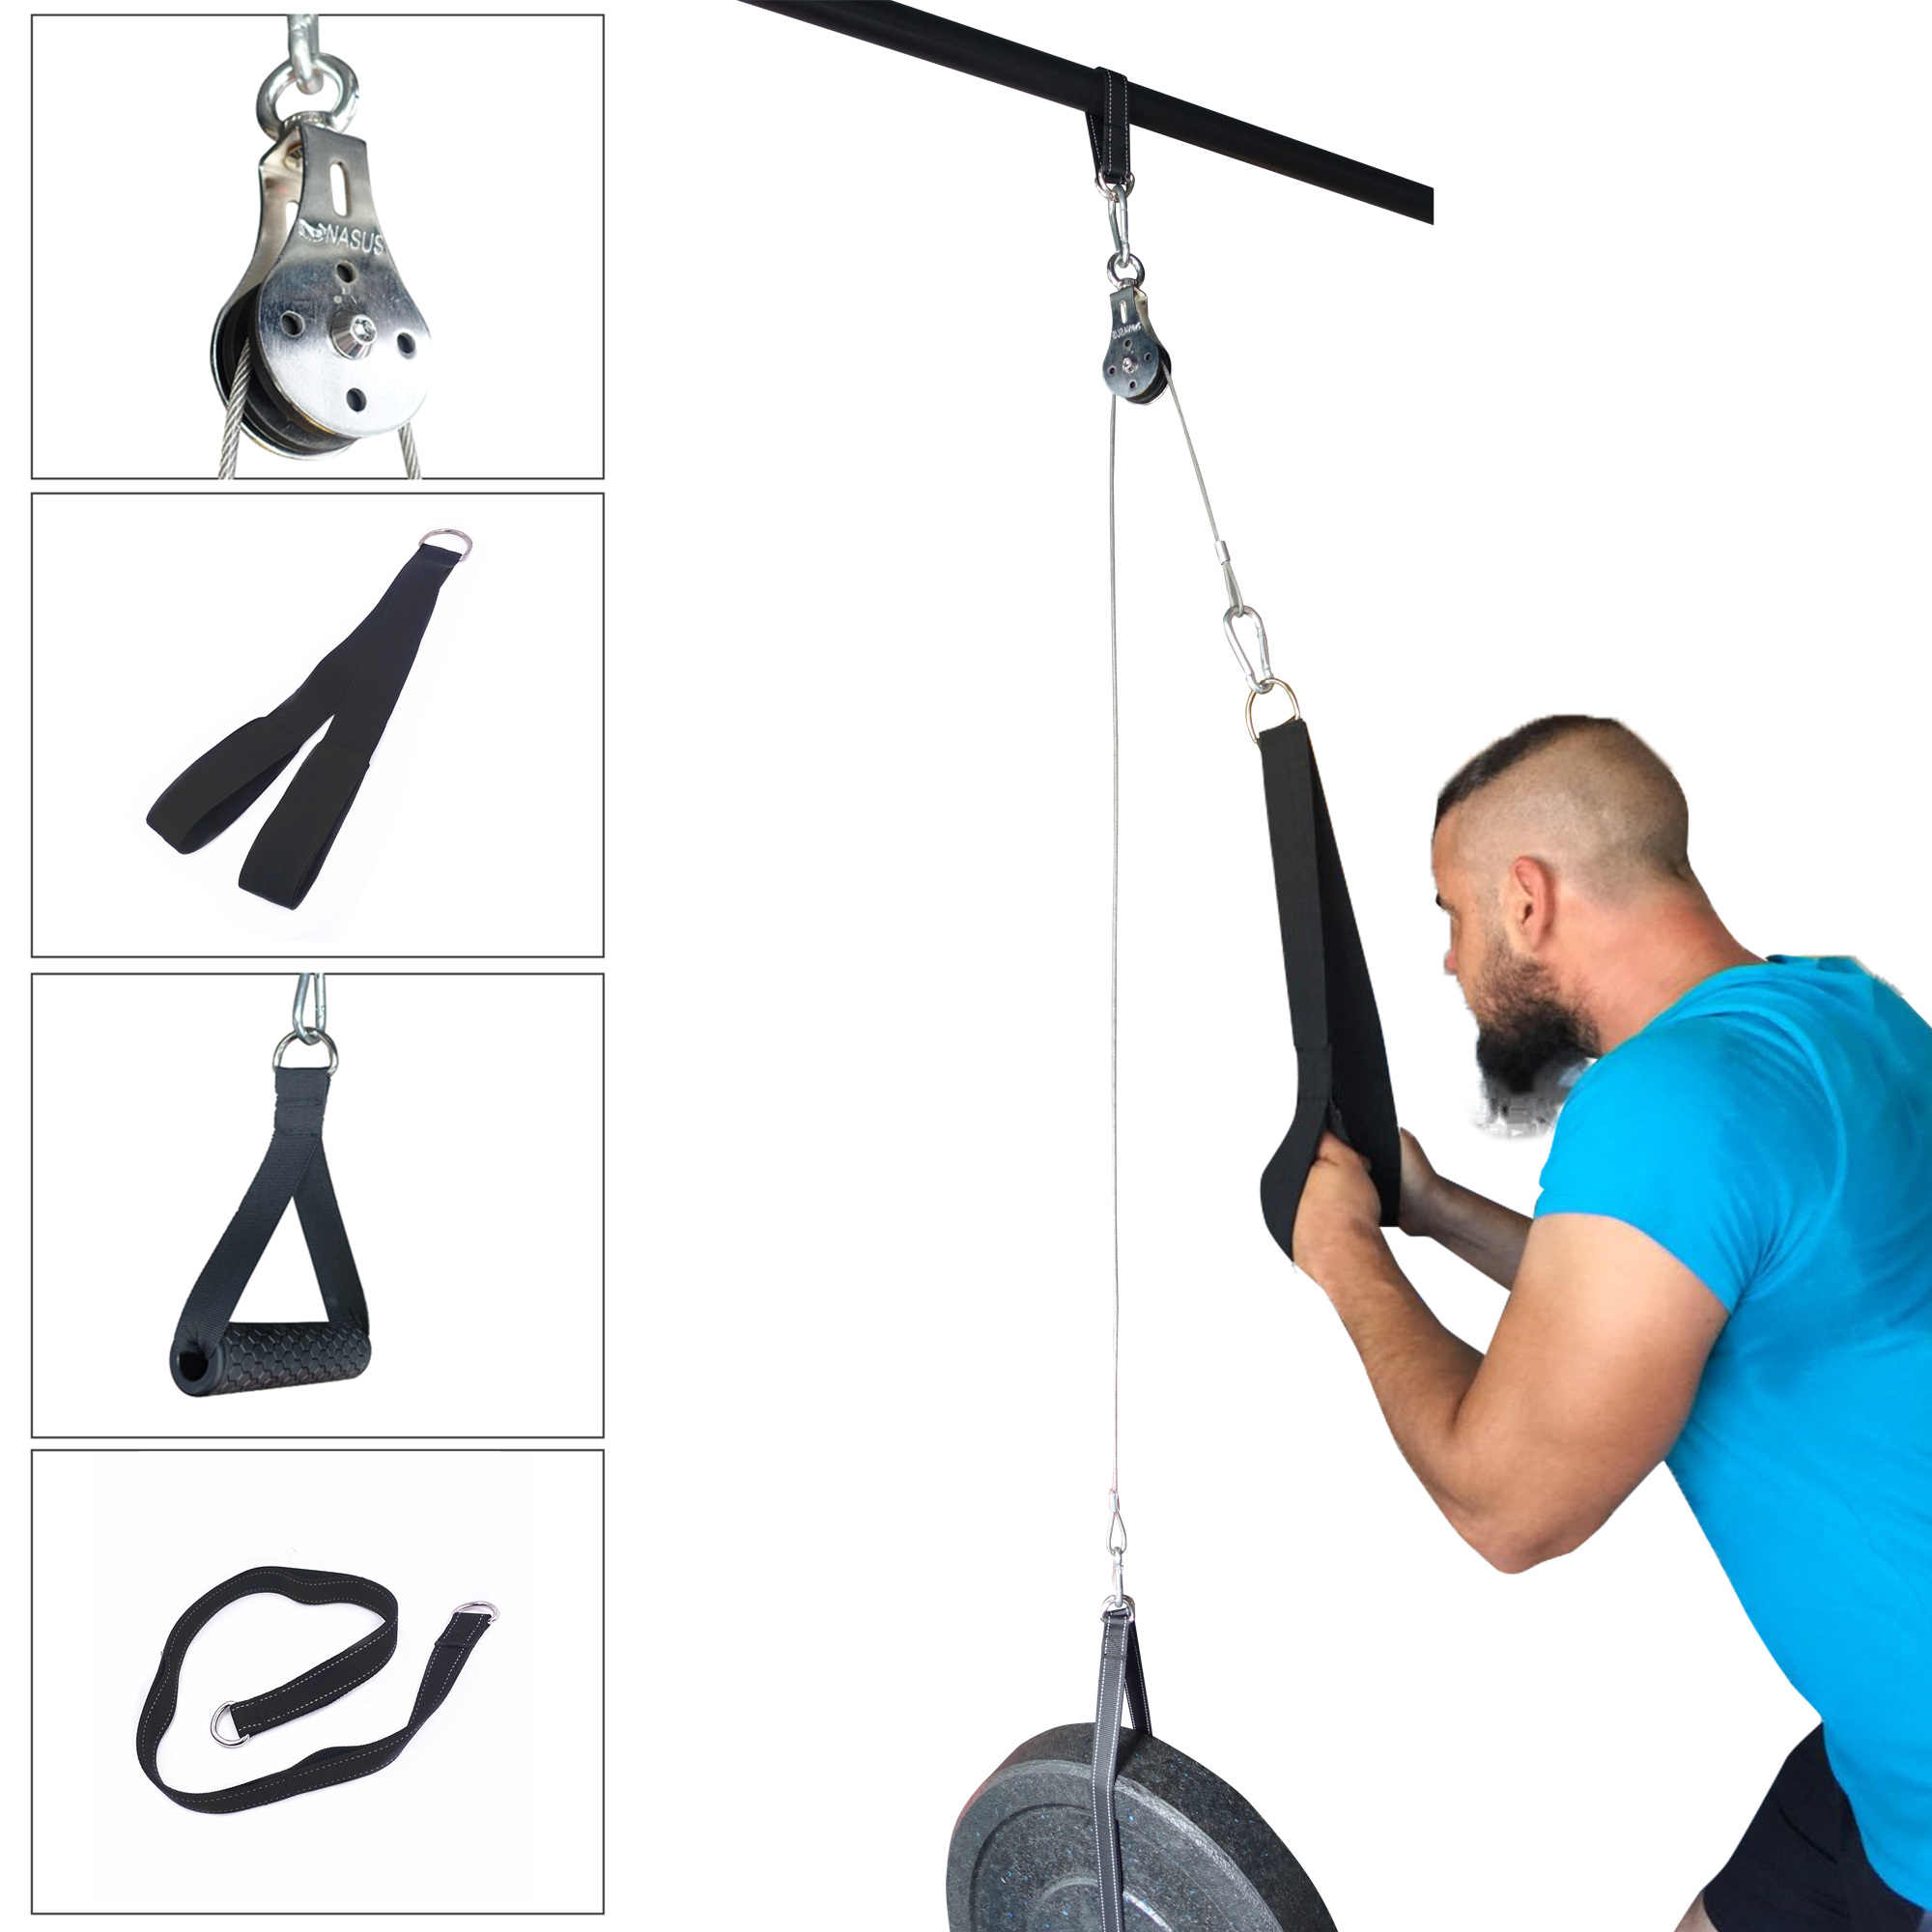 Steel Fitness DIY Pulley Cable Arm Triceps Forearm Training Gym Equipment